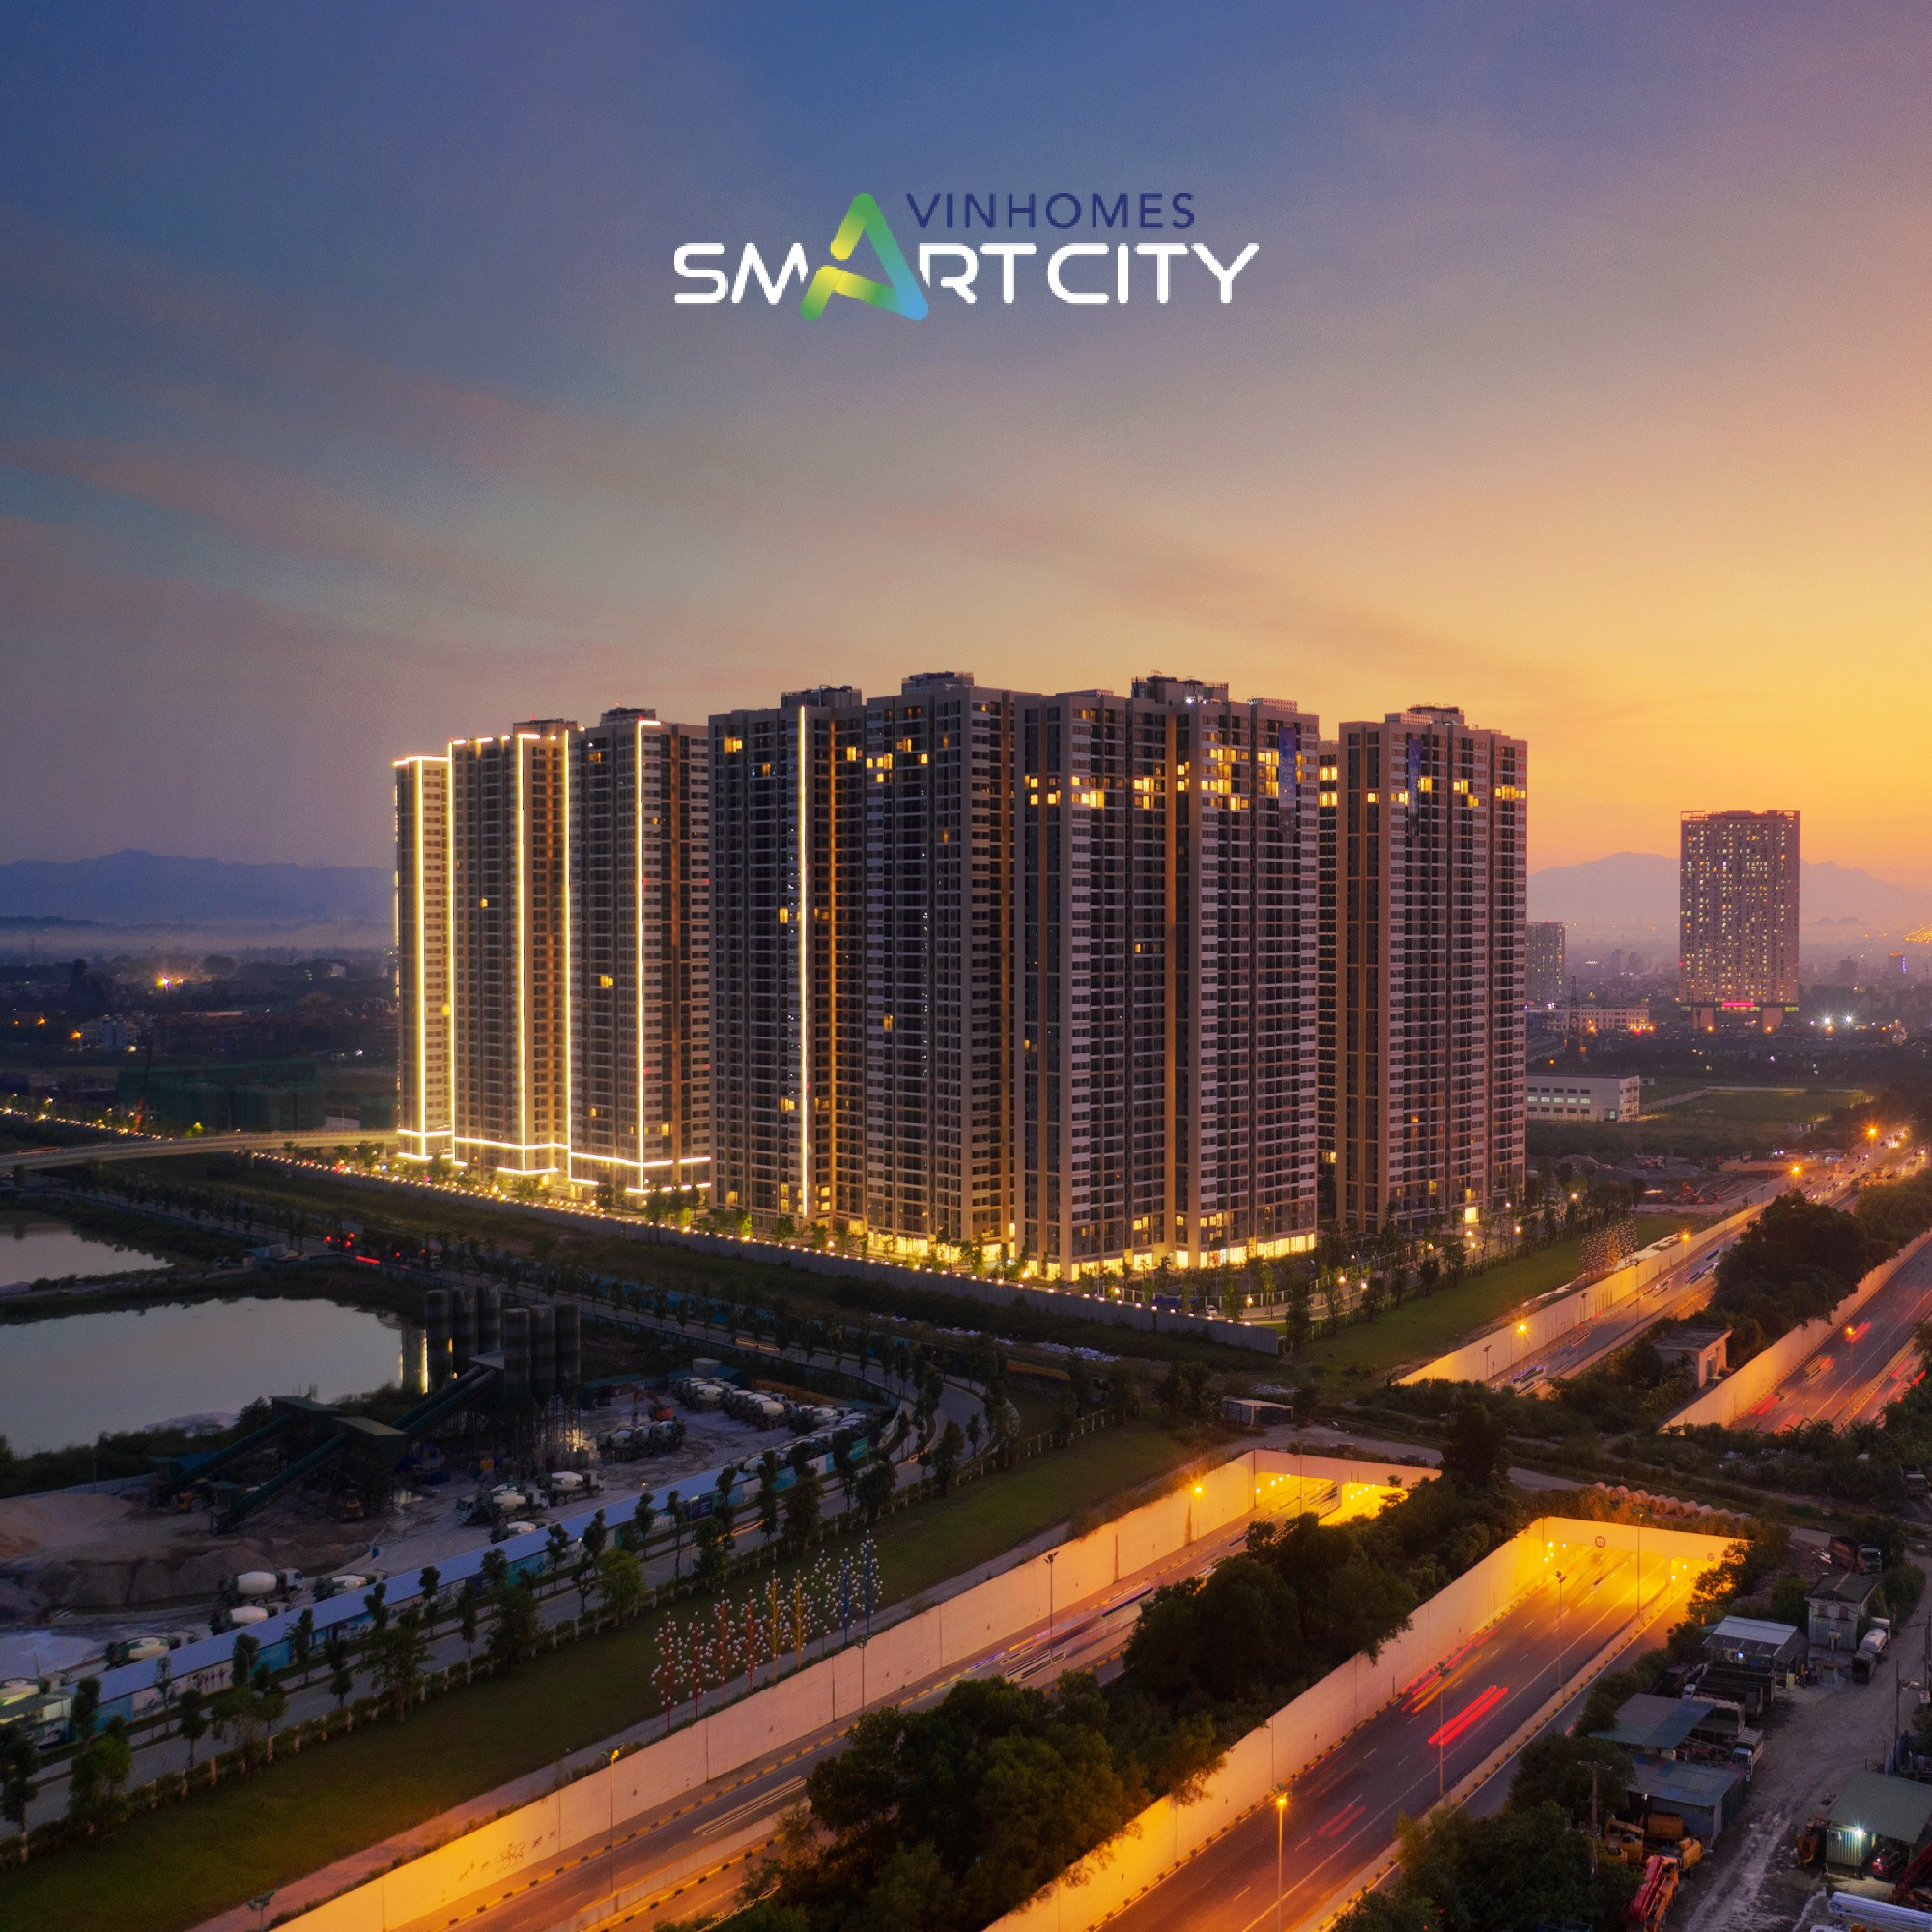 Vinhomes wins double awards for smart city project at Asia Pacific Property Awards